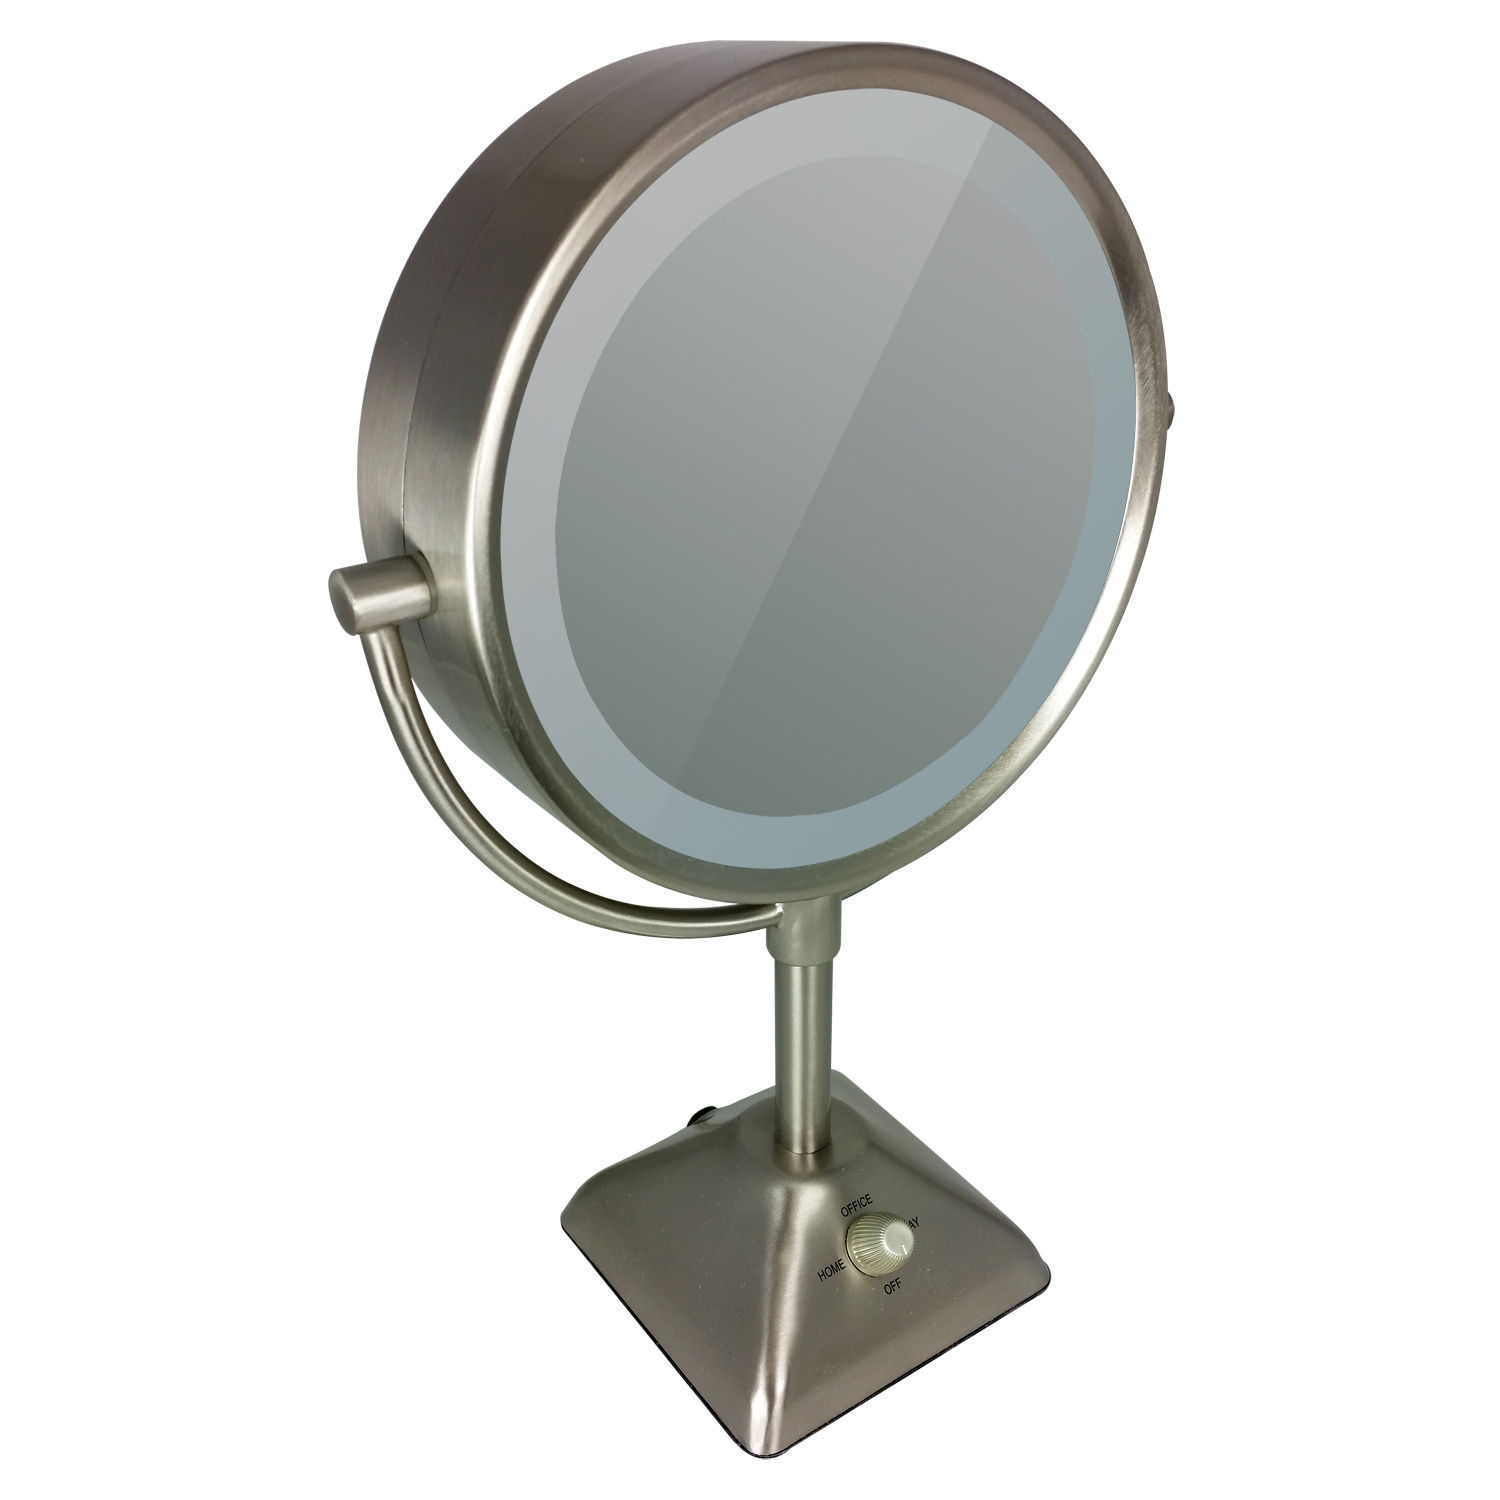 conair illuminations double sided lighted makeup mirror. Black Bedroom Furniture Sets. Home Design Ideas